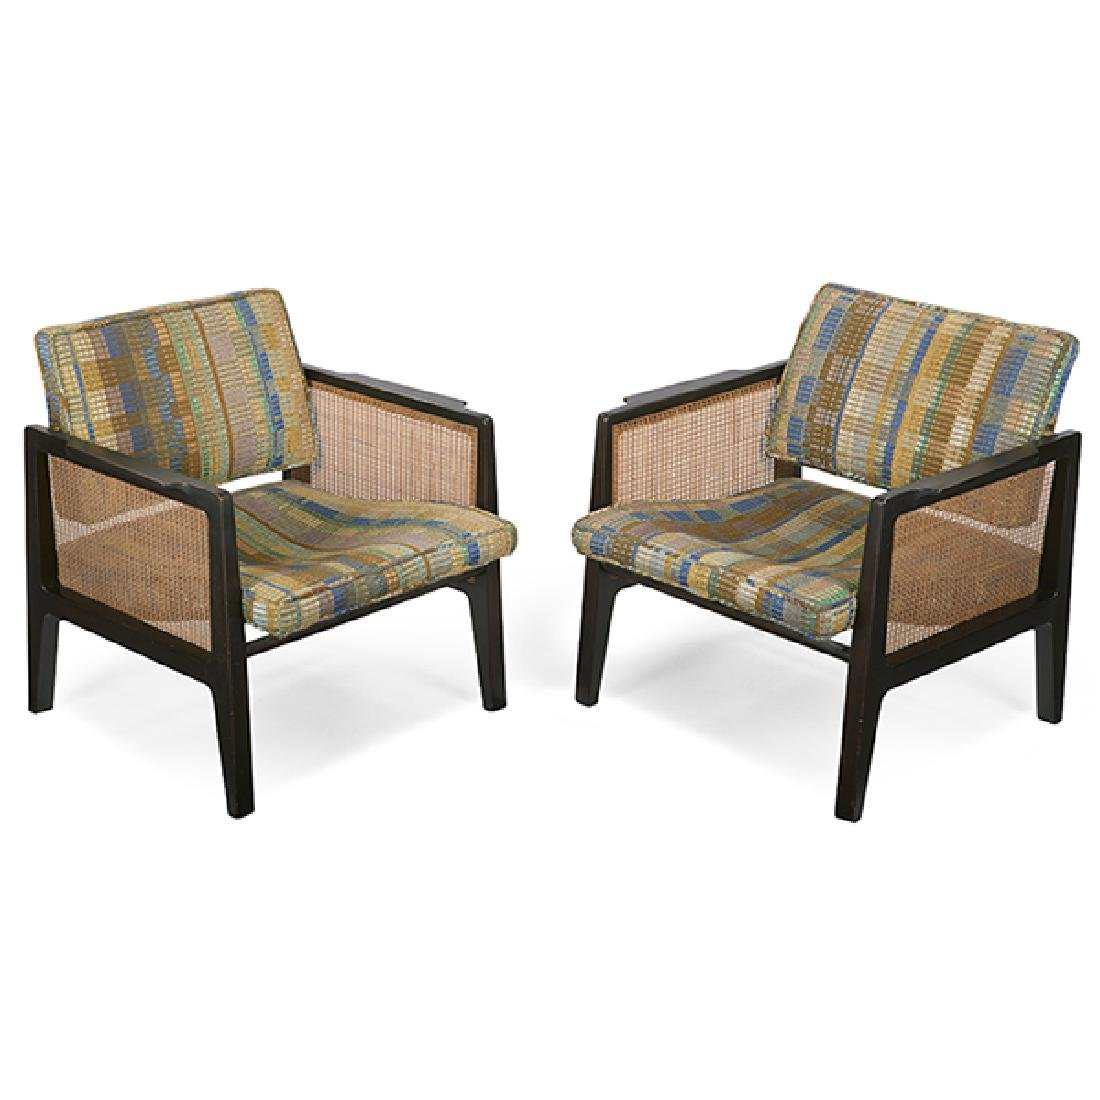 Edward Wormley (1907-1995) for Dunbar Pivot Back Chair,